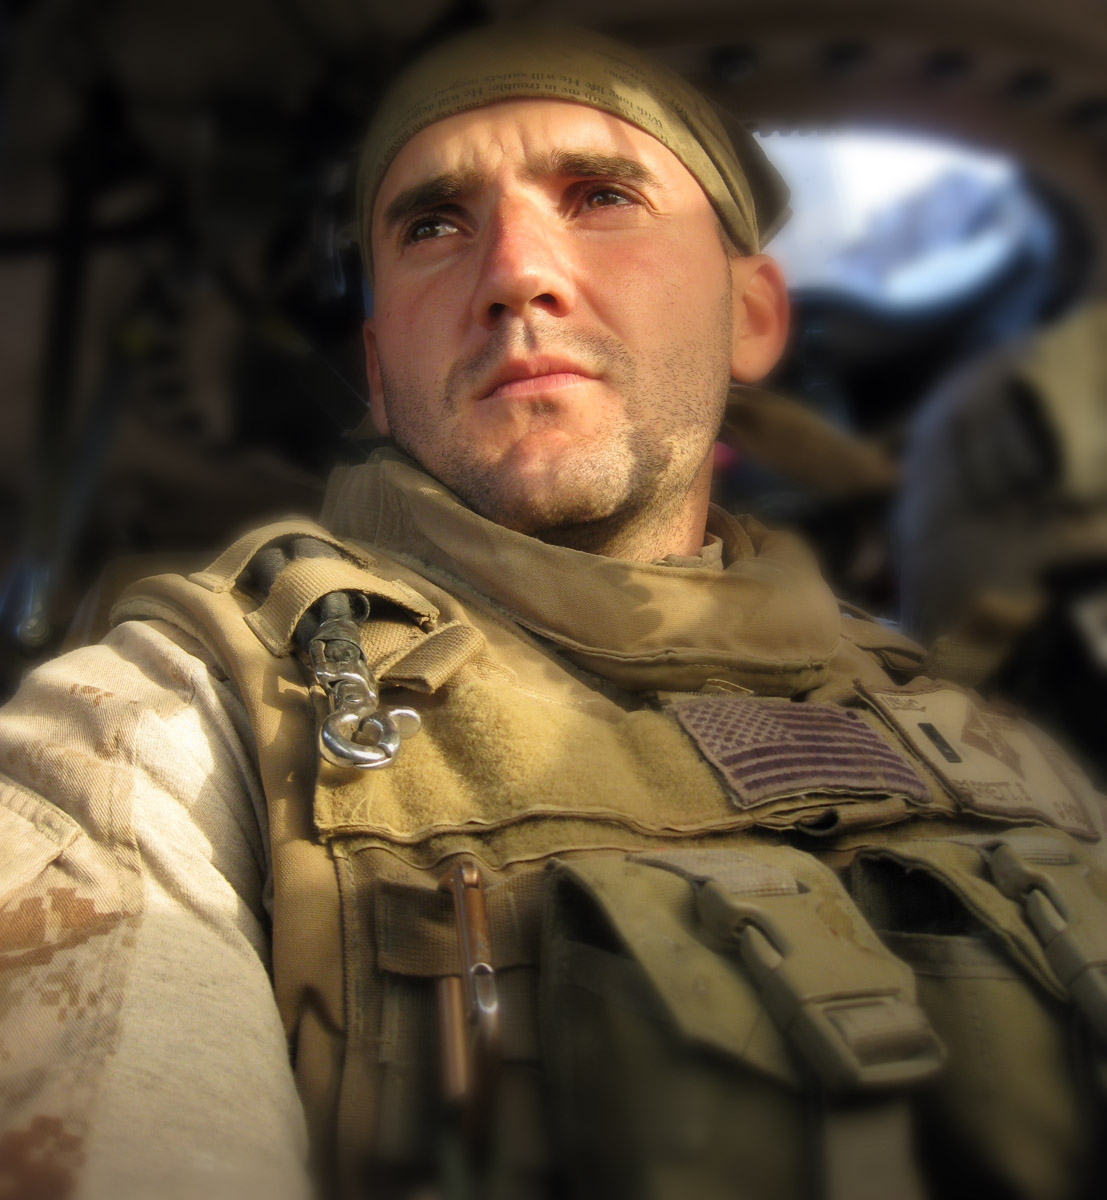 """U.S. Marine Corps Captain Brandon """"Bull"""" Barrett, 27, of Marion, Indiana, assigned to the 1st Battalion, 6th Marine Regiment, 2nd Marine Division, II Marine Expeditionary Force, based out of Camp Lejeune, North Carolina, was killed on May 5, 2010, while supporting combat operations in Helmand Province, Afghanistan. He is survived by his parents Cindy and Brett Barrett, his sisters Ashley and Taylor Barrett, his brother Brock Barrett, and his grandmother Carmen Johnson."""